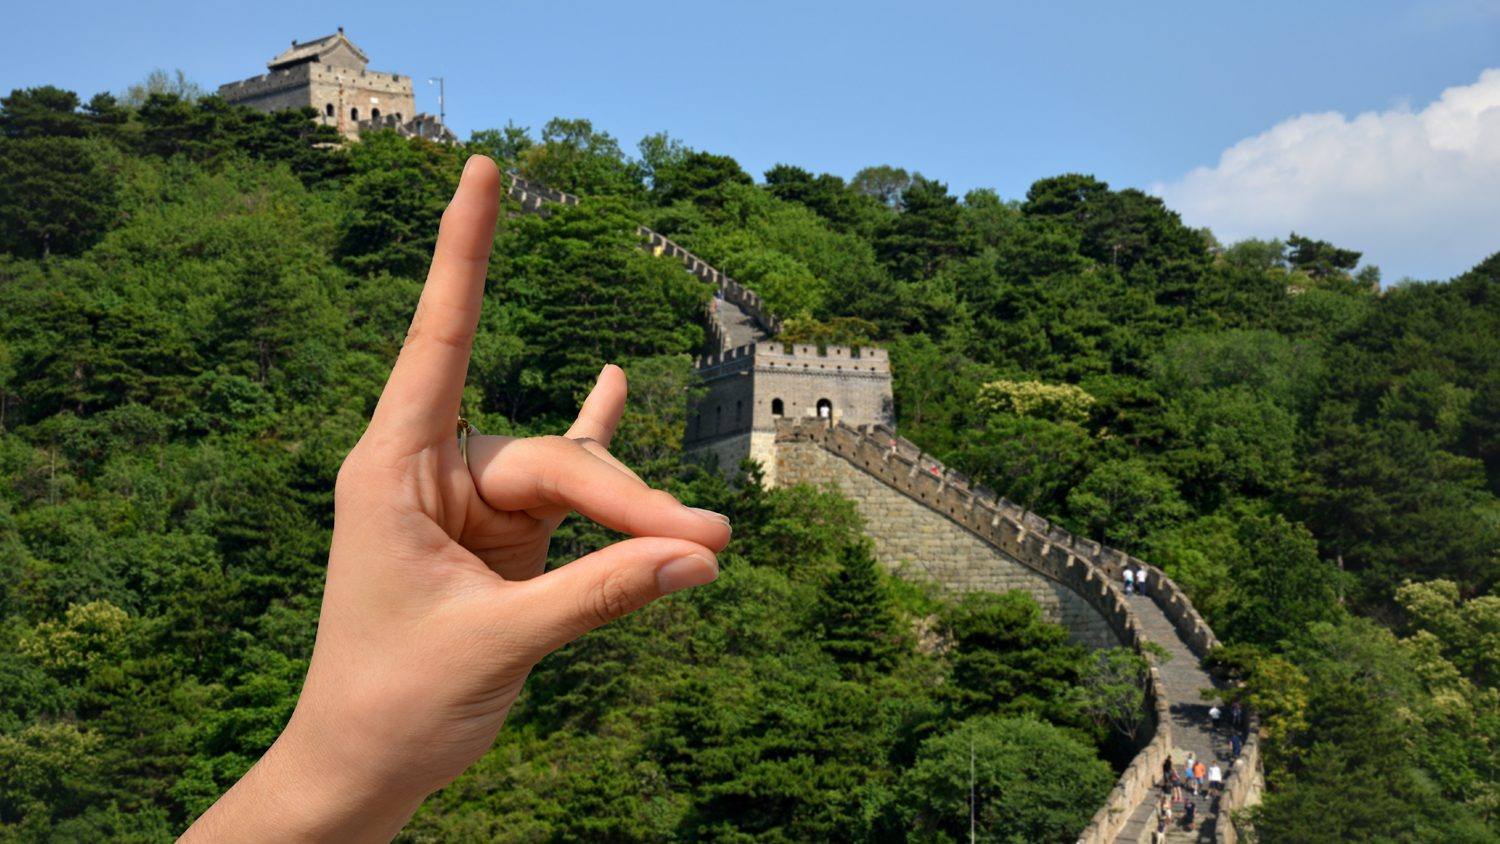 Student's giving the Wolfpack sign at the Great Wall of China